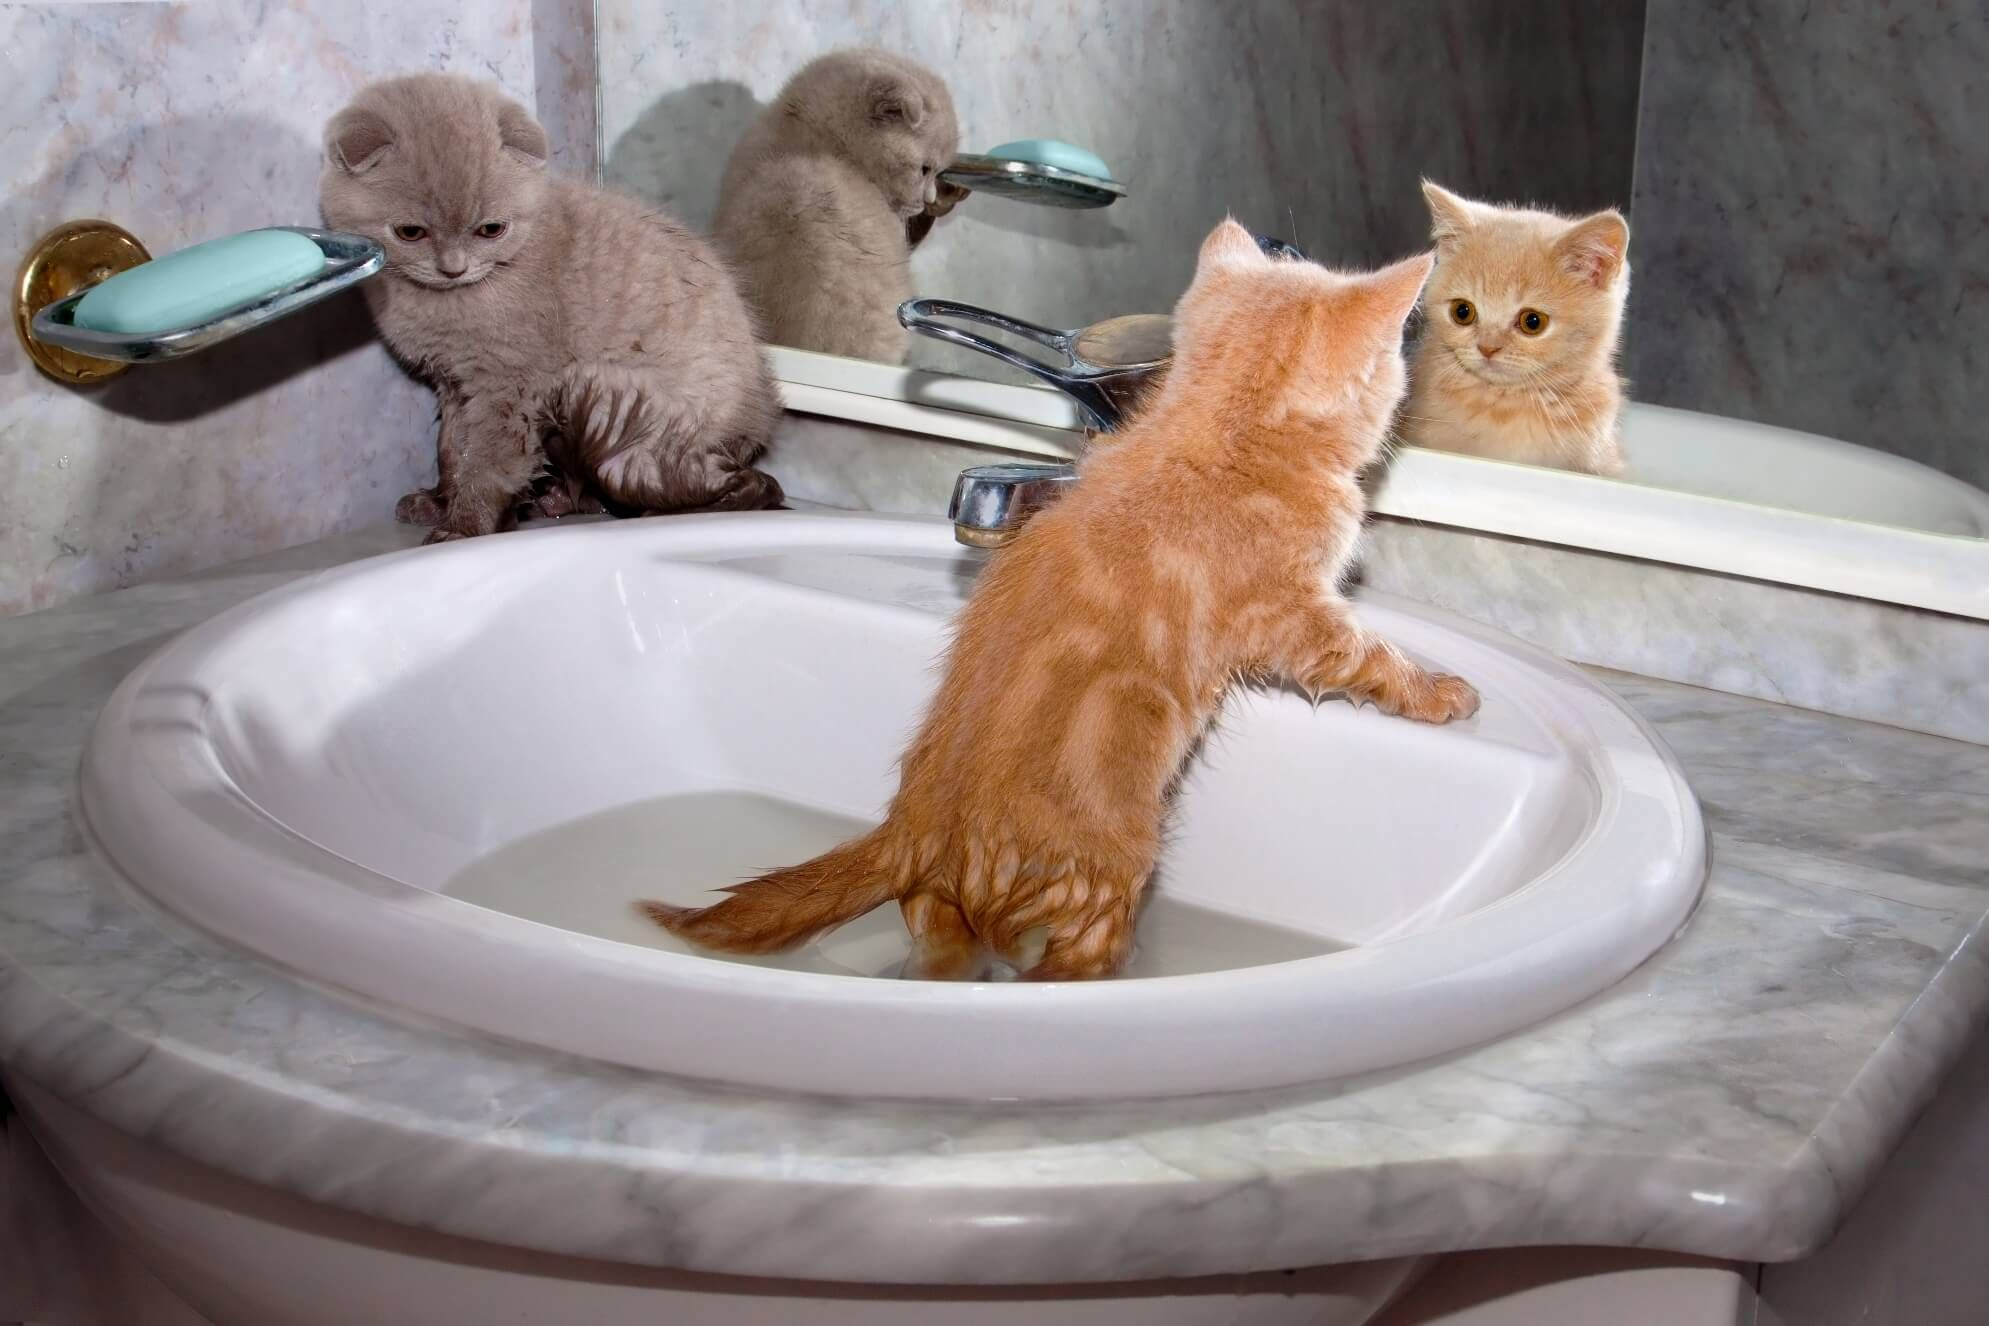 How To Give A Cat A Bath Purrfect Love Newborn Kittens Cat Care Kitten Care